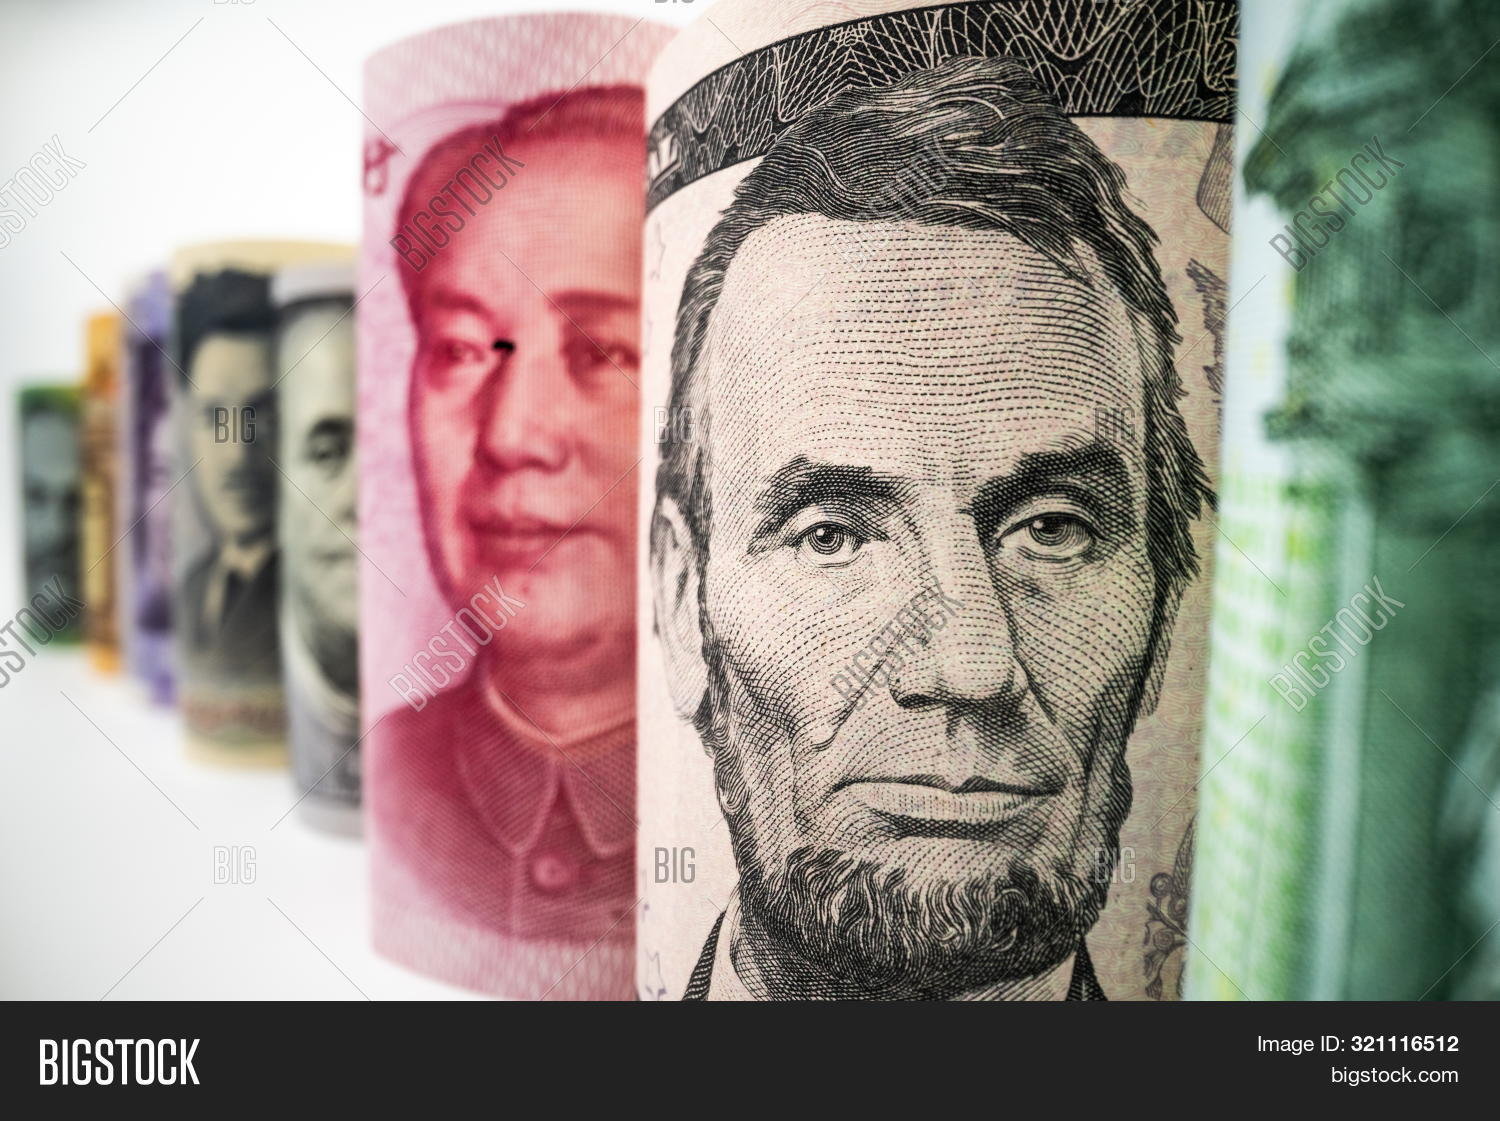 asia,backgrounds,bank,banknote,bill,black,britain,business,cash,china,concept,currency,dollar,economy,eur,euro,european,exchange,faces,finance,financial,foreign,forex,gbp,global,great,international,japan,leader,macro,market,money,note,paper,payment,pound,rate,sign,stock,technology,trade,uk,us,usa,usd,wealth,white,world,yen,yuan